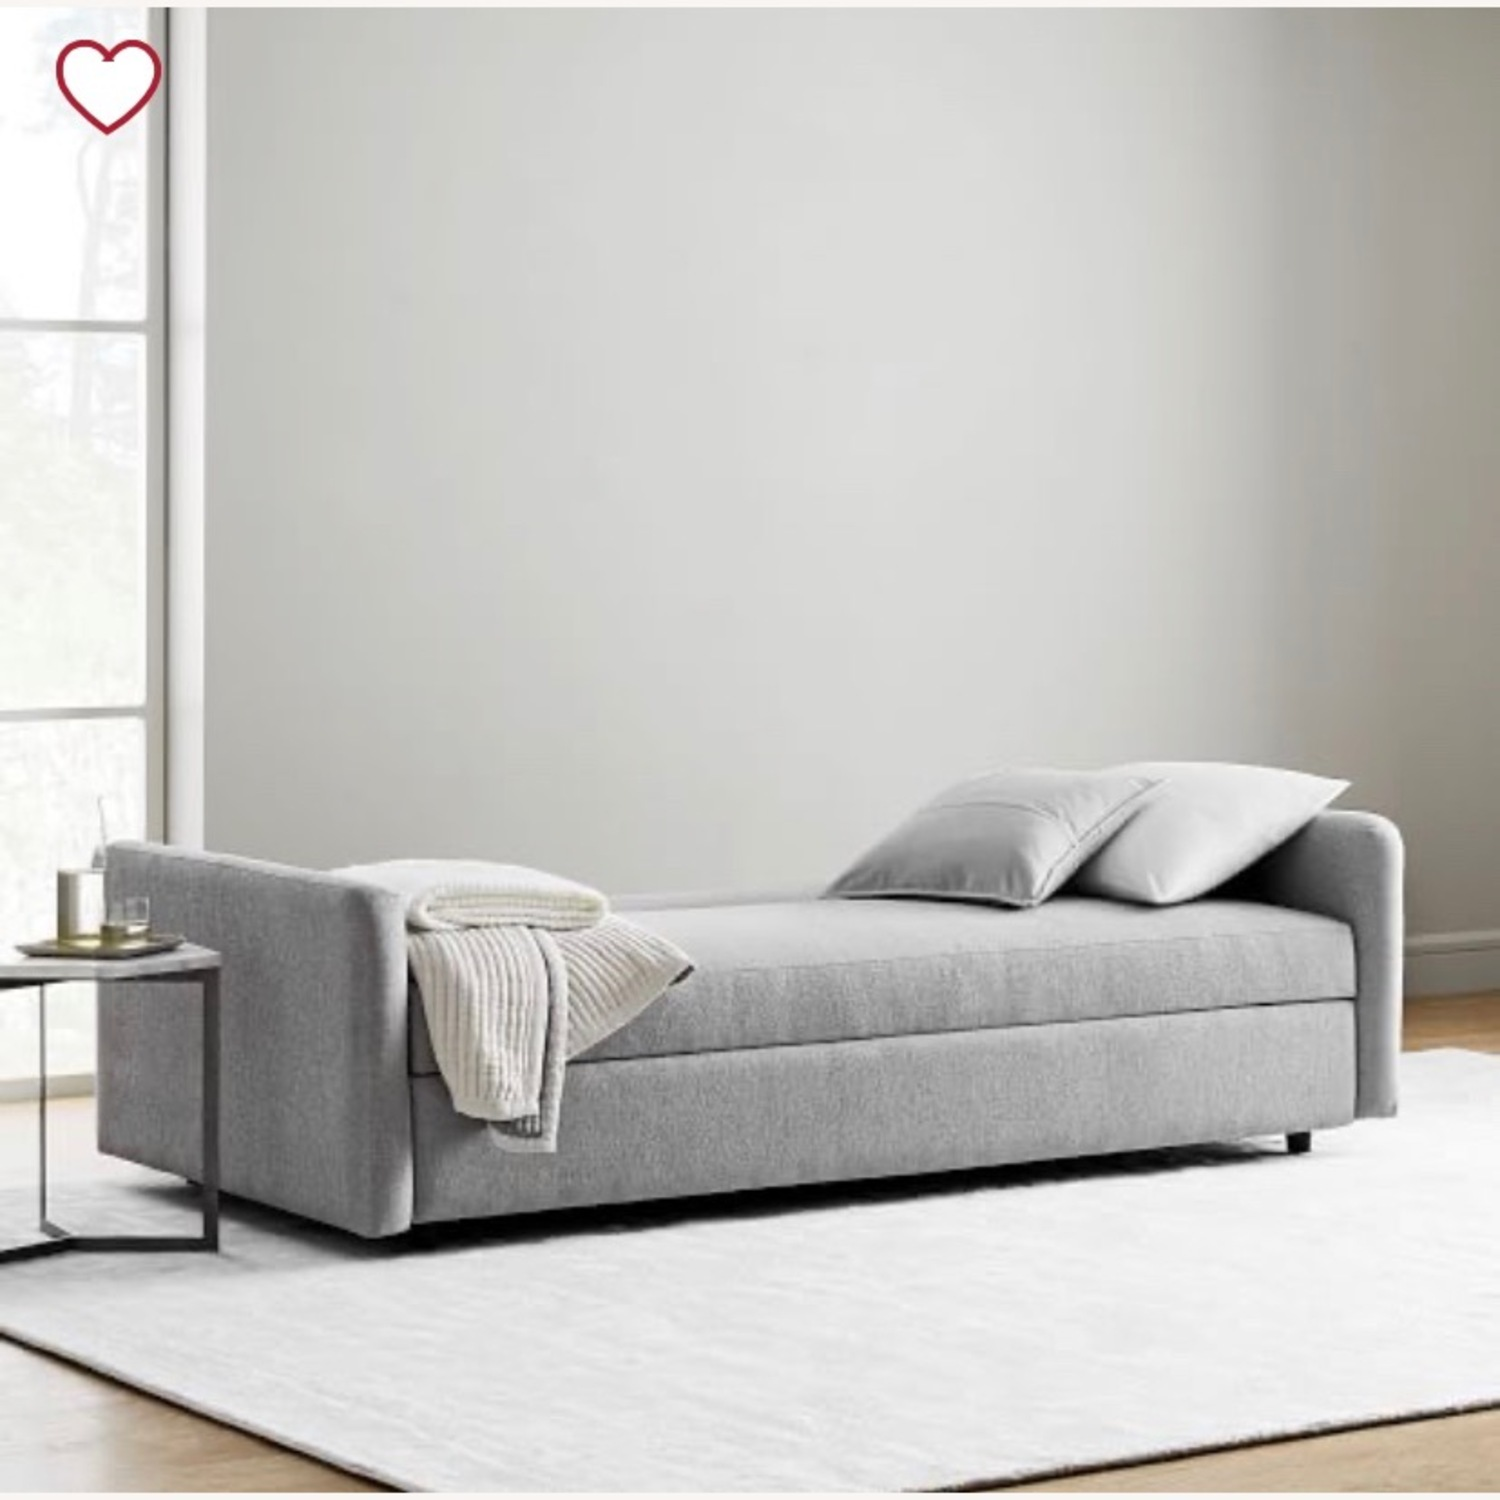 West Elm Clara sleeper sofa - image-2